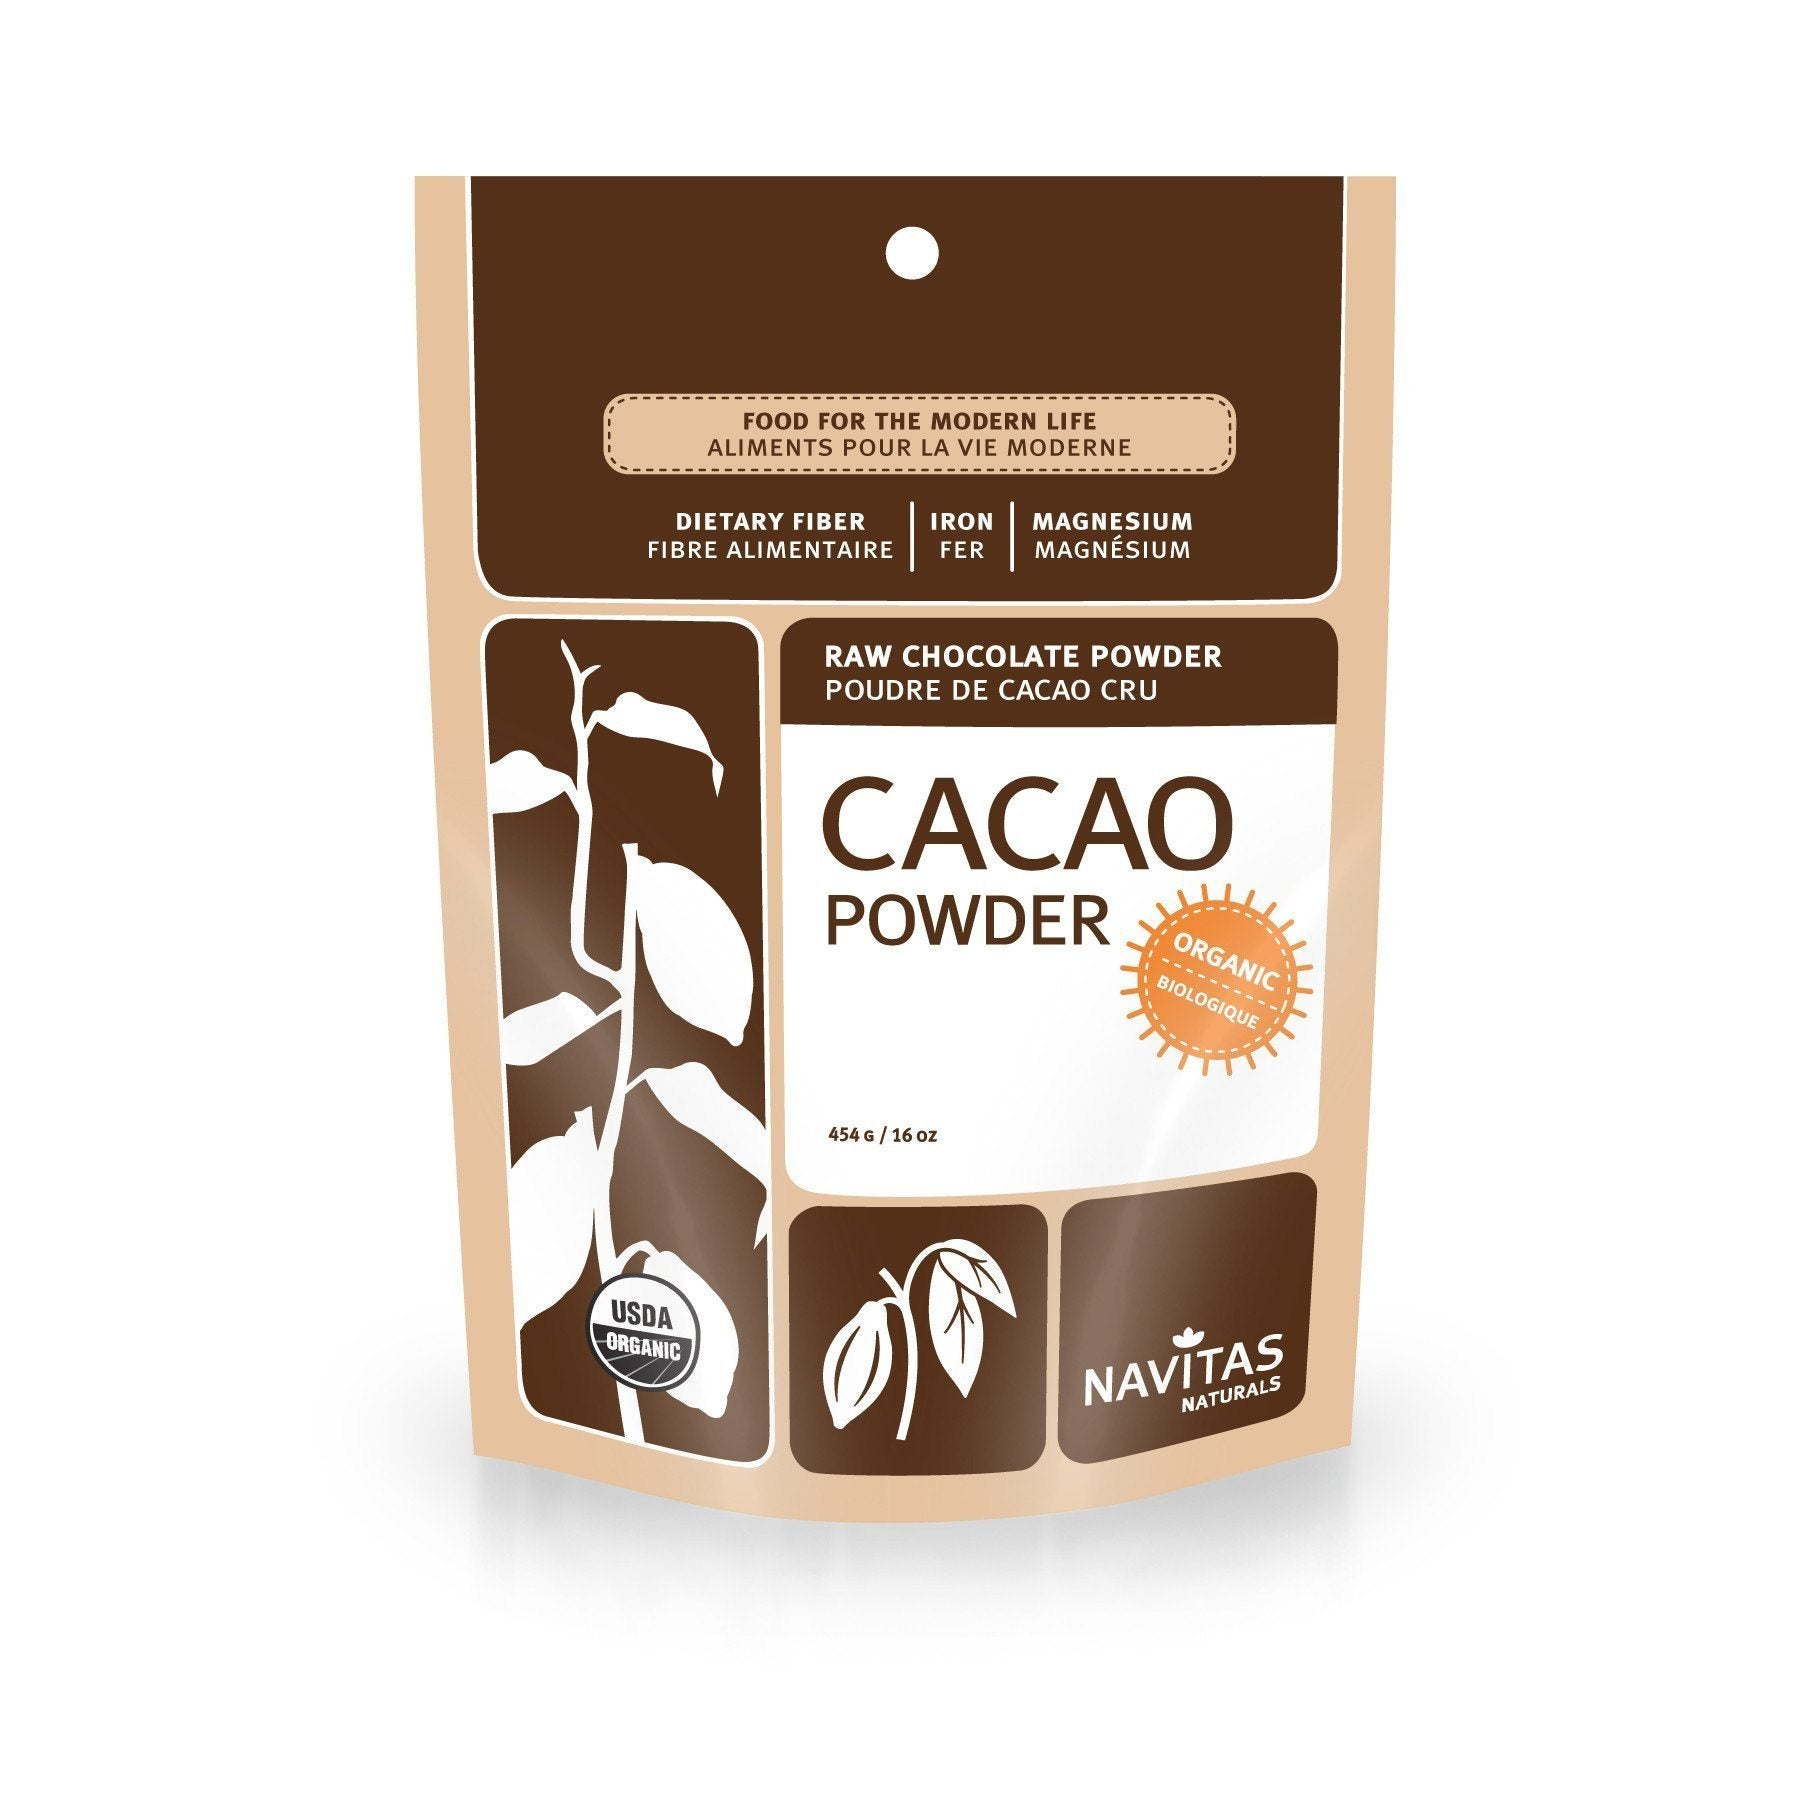 Food & Drink - Navitas - Cacao Power Powder- 454g